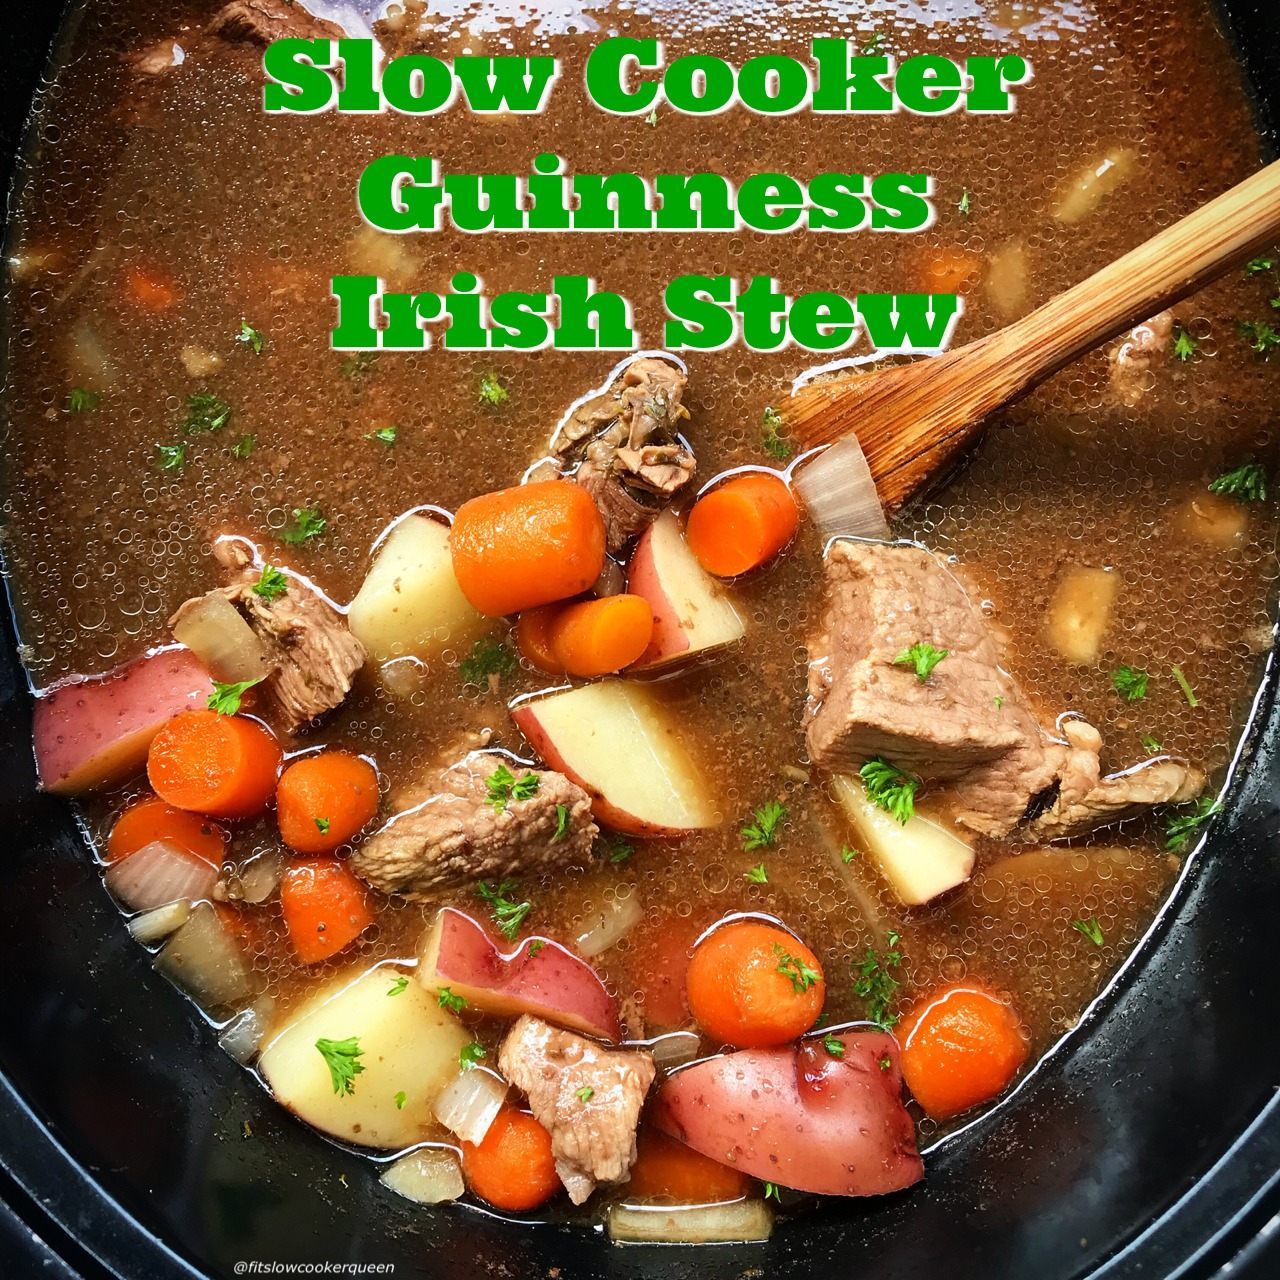 Slow Cooker Guinness Irish Stew Fit Slow Cooker Queen